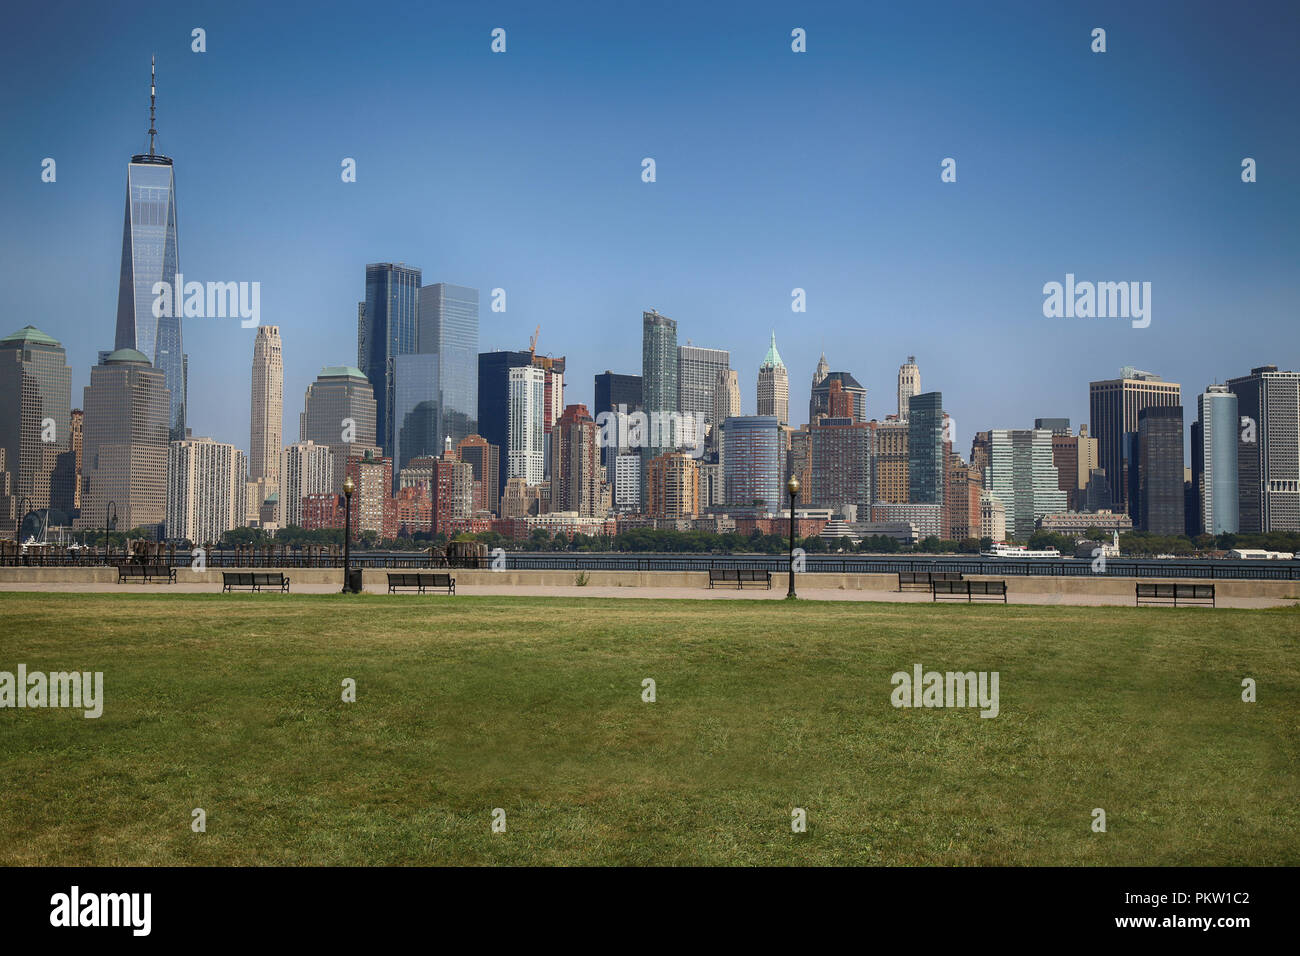 Manhattan Skyline from Liberty State Park Playground in NewJersey, New York City - Stock Image